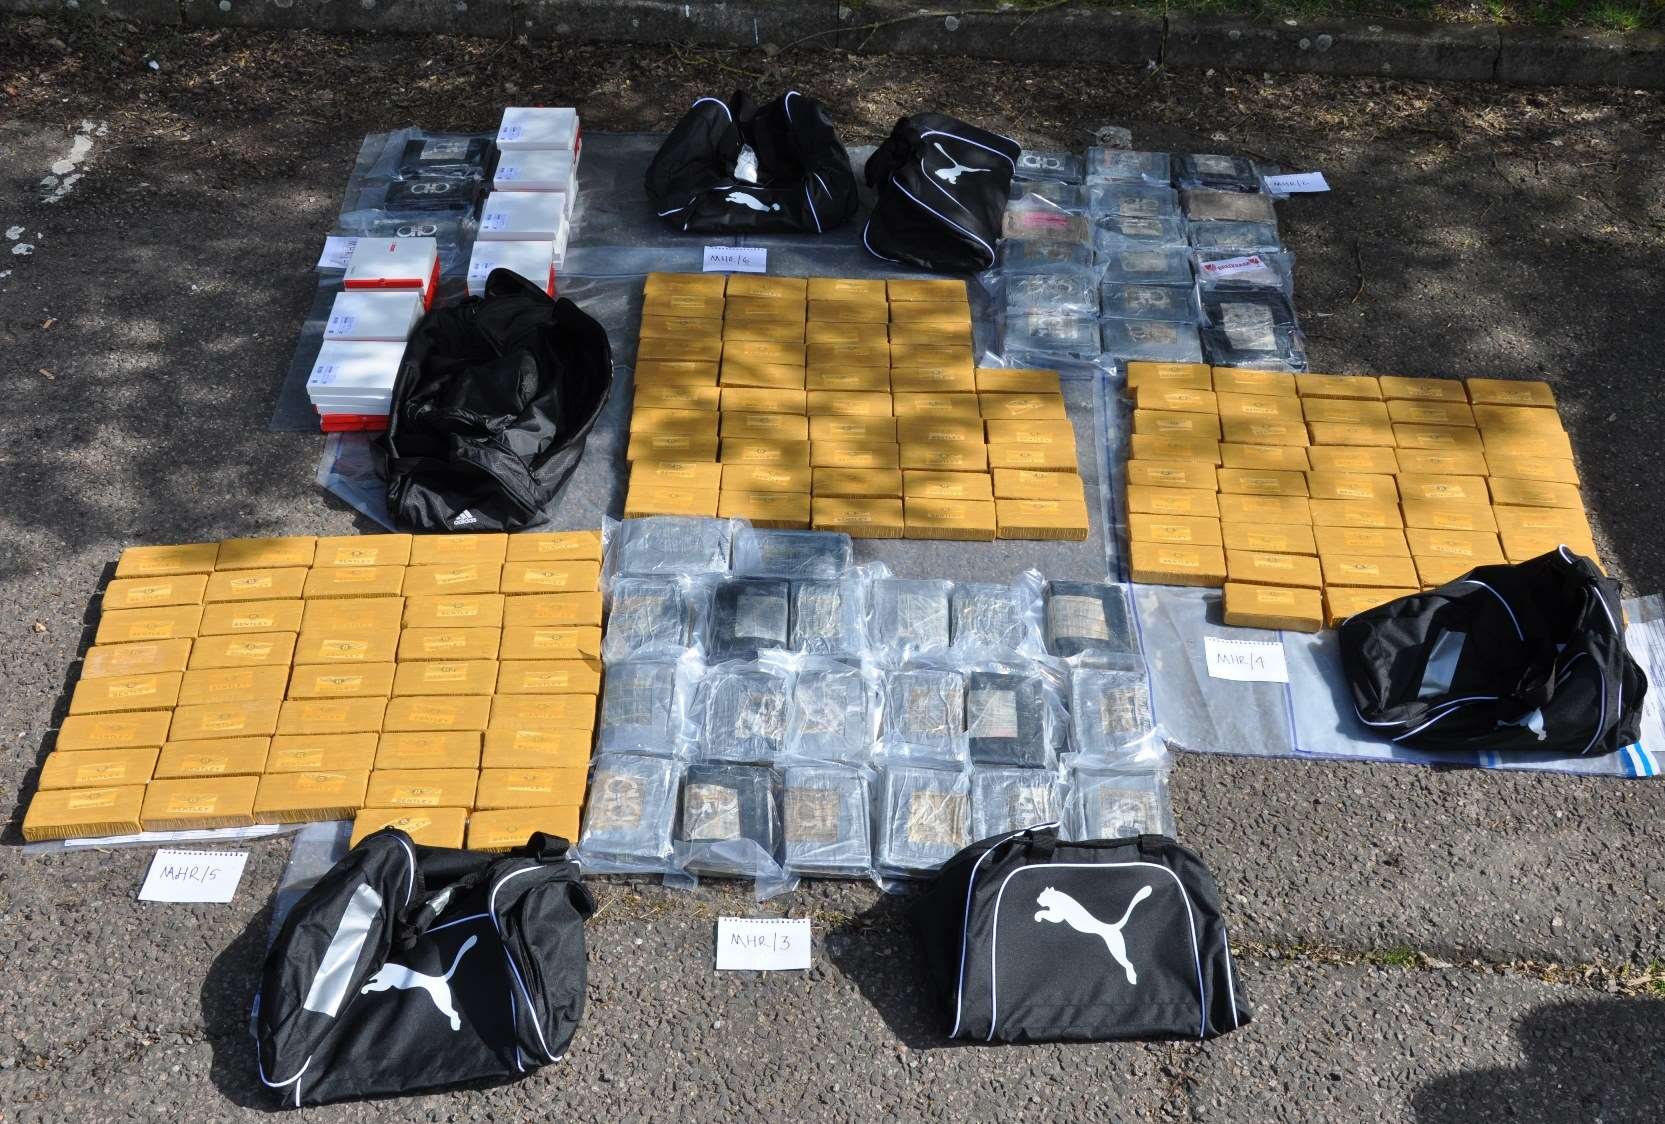 The haul recovered. Picture: National Crime Agency